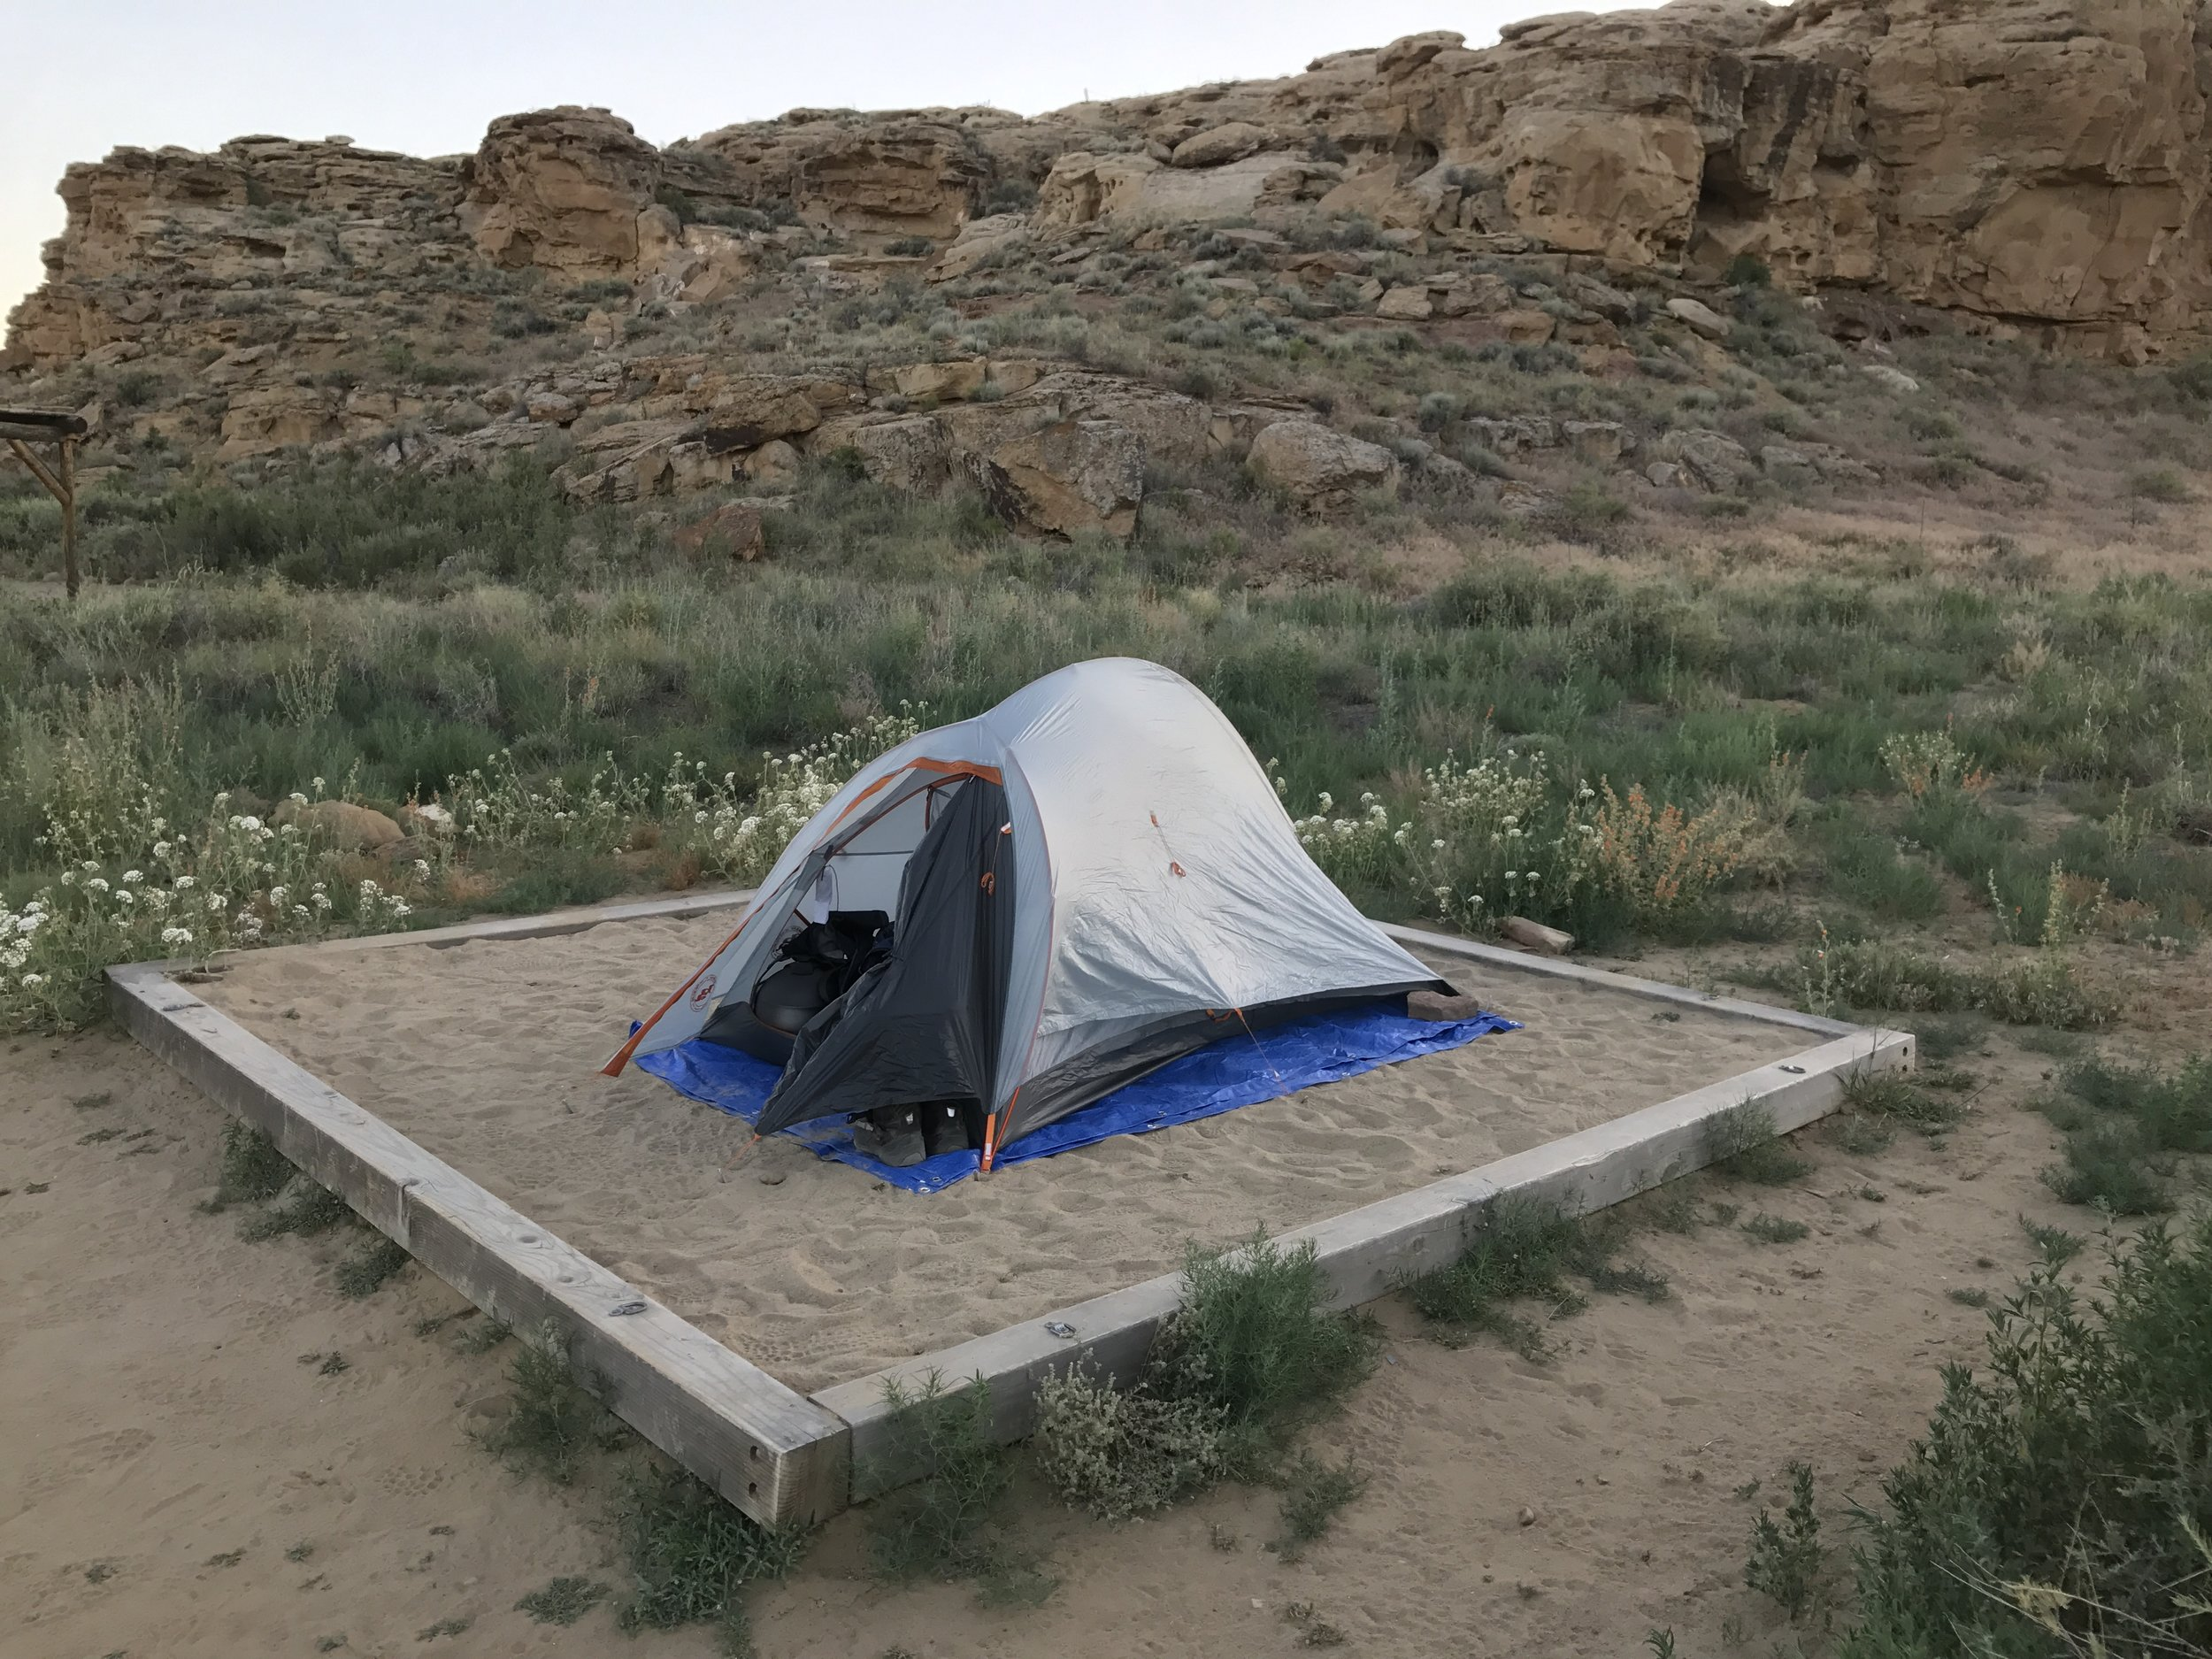 Nice soft sand for my tent.